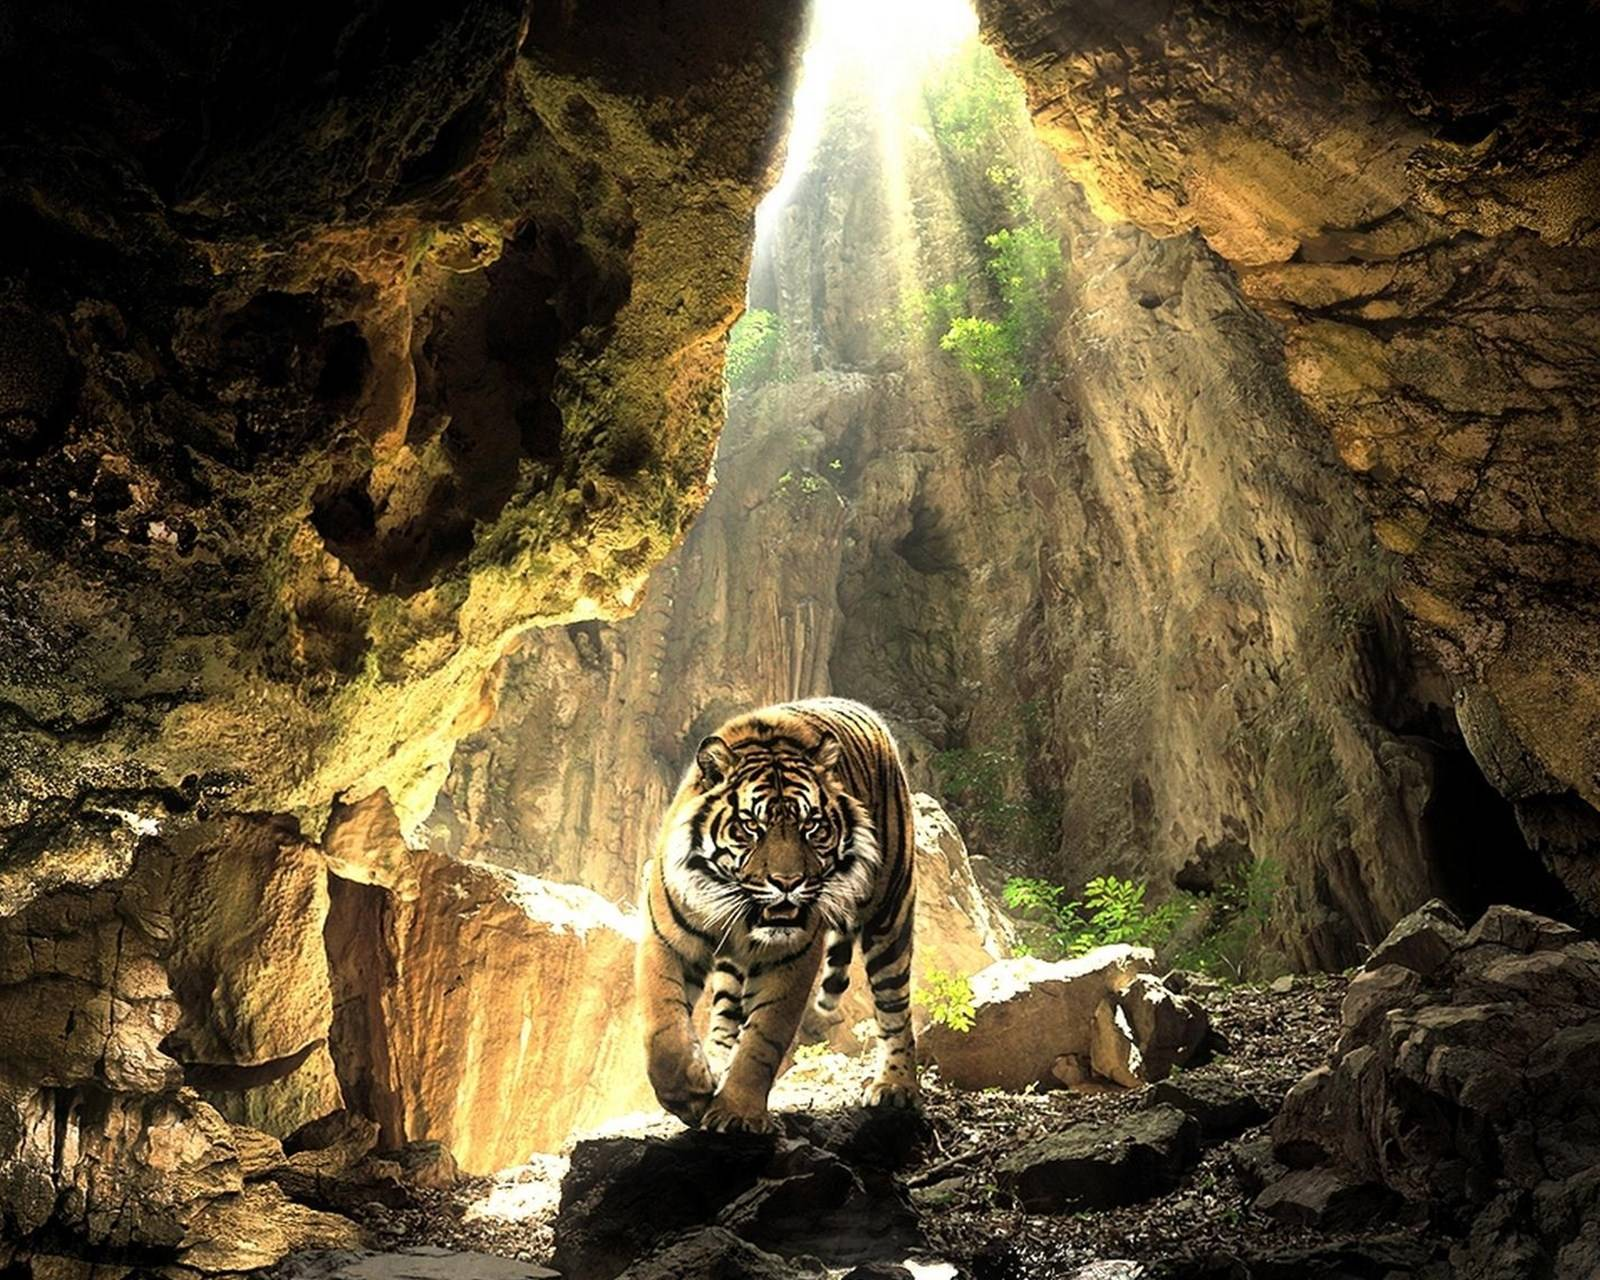 Tiger In The Gorge